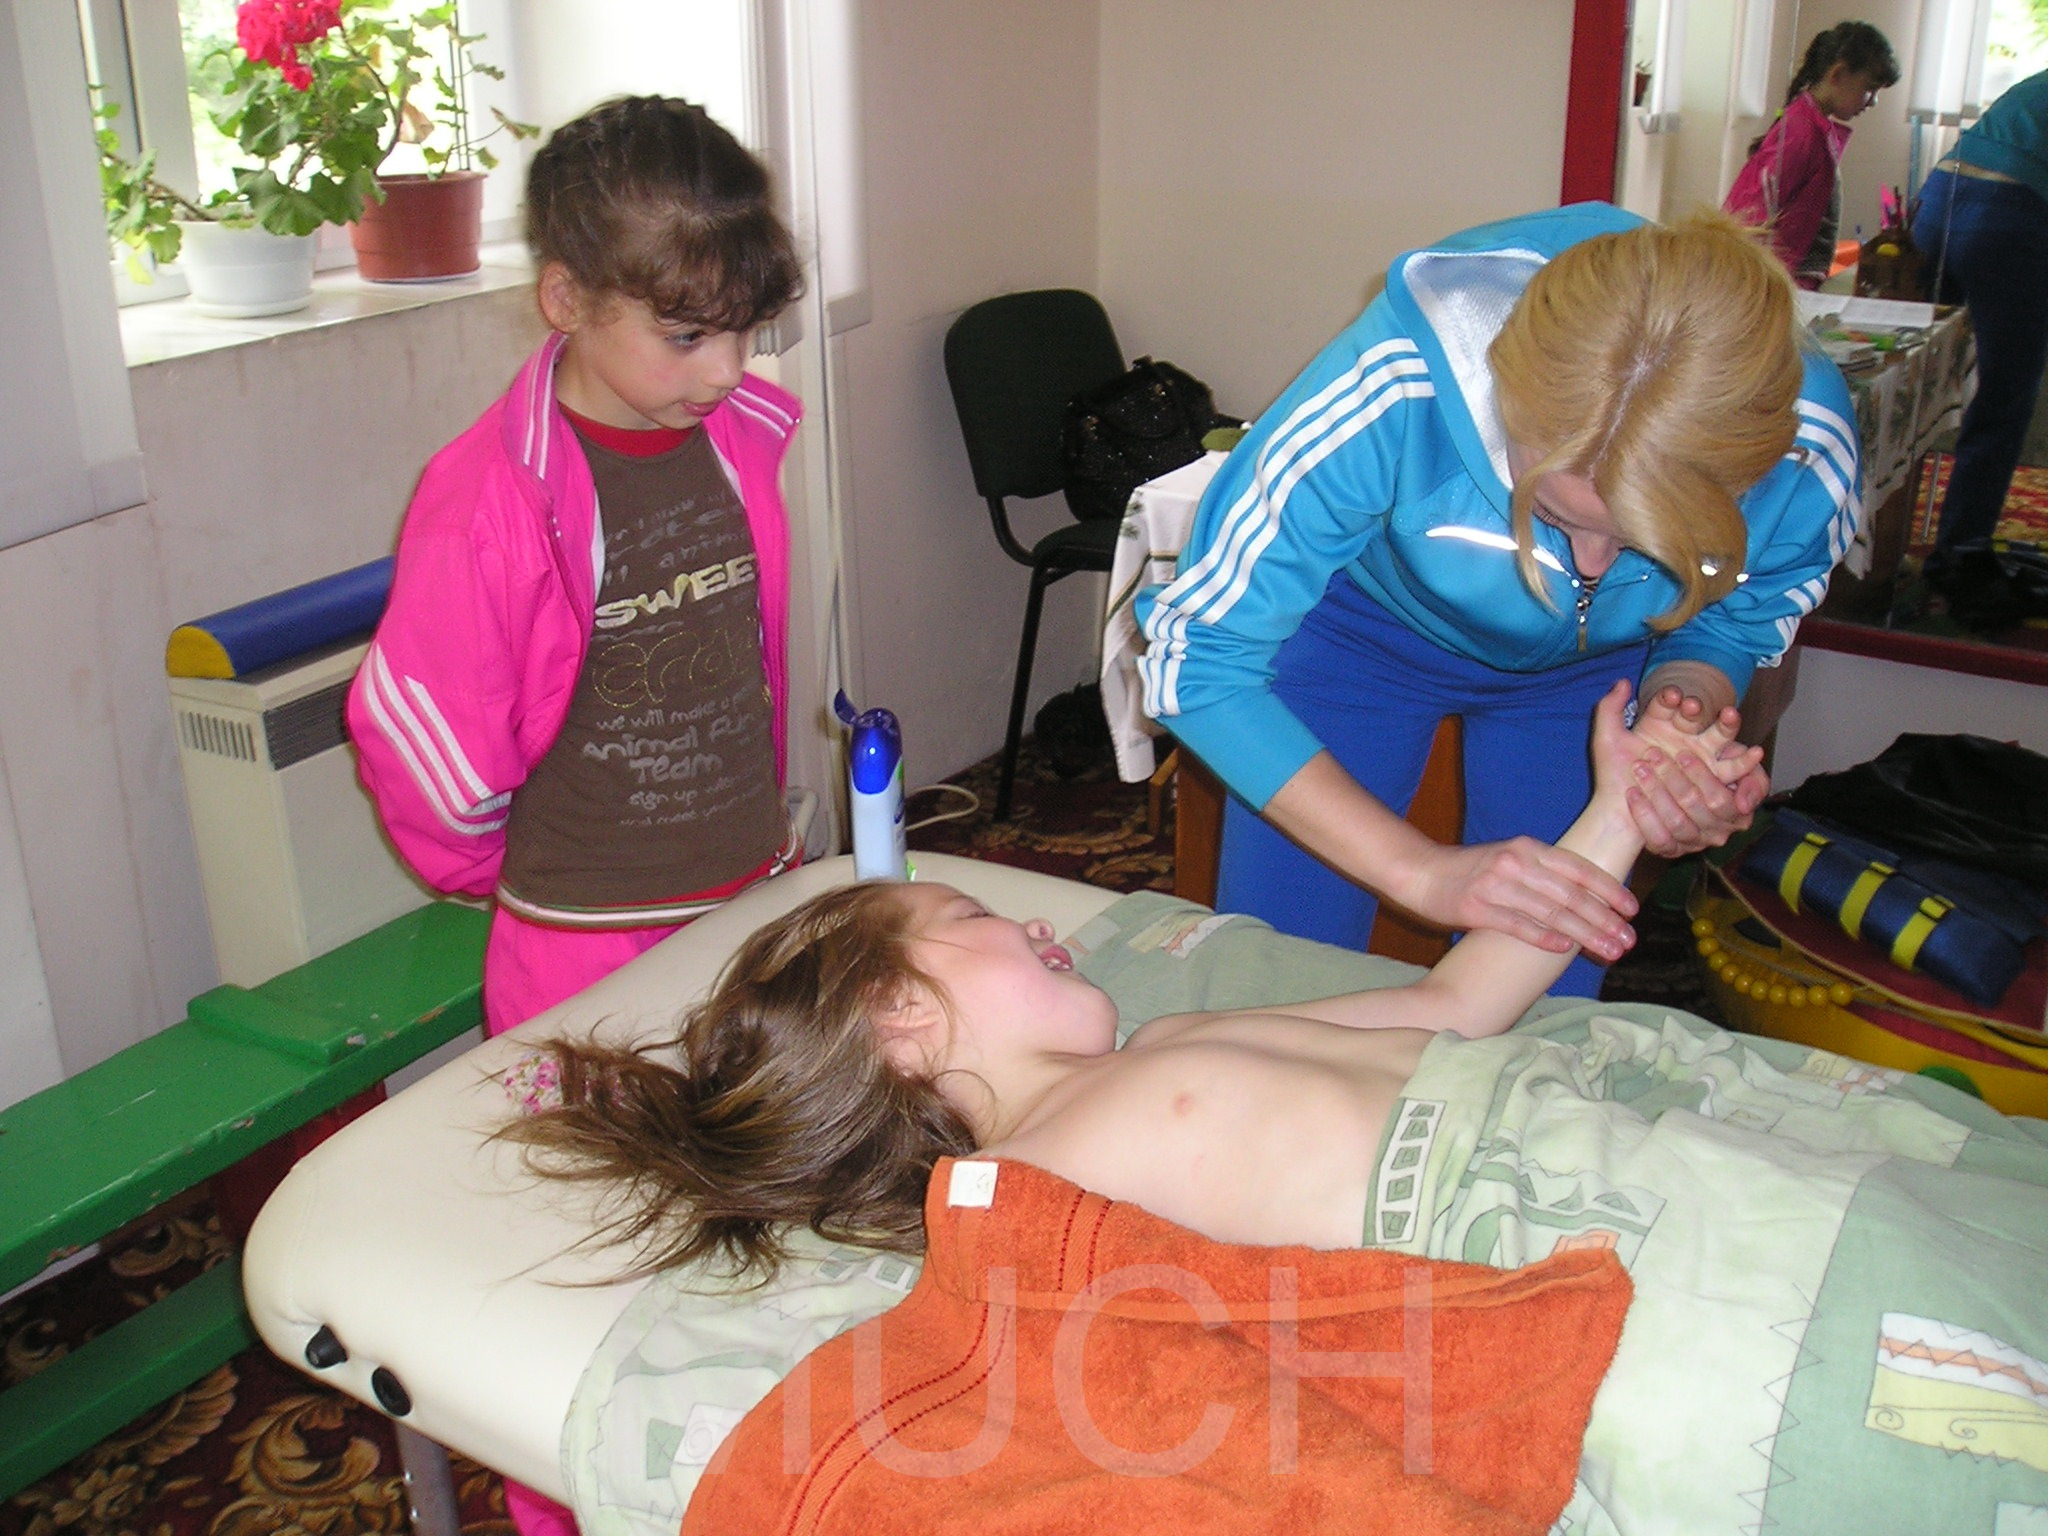 I also want to be a massage therapist!